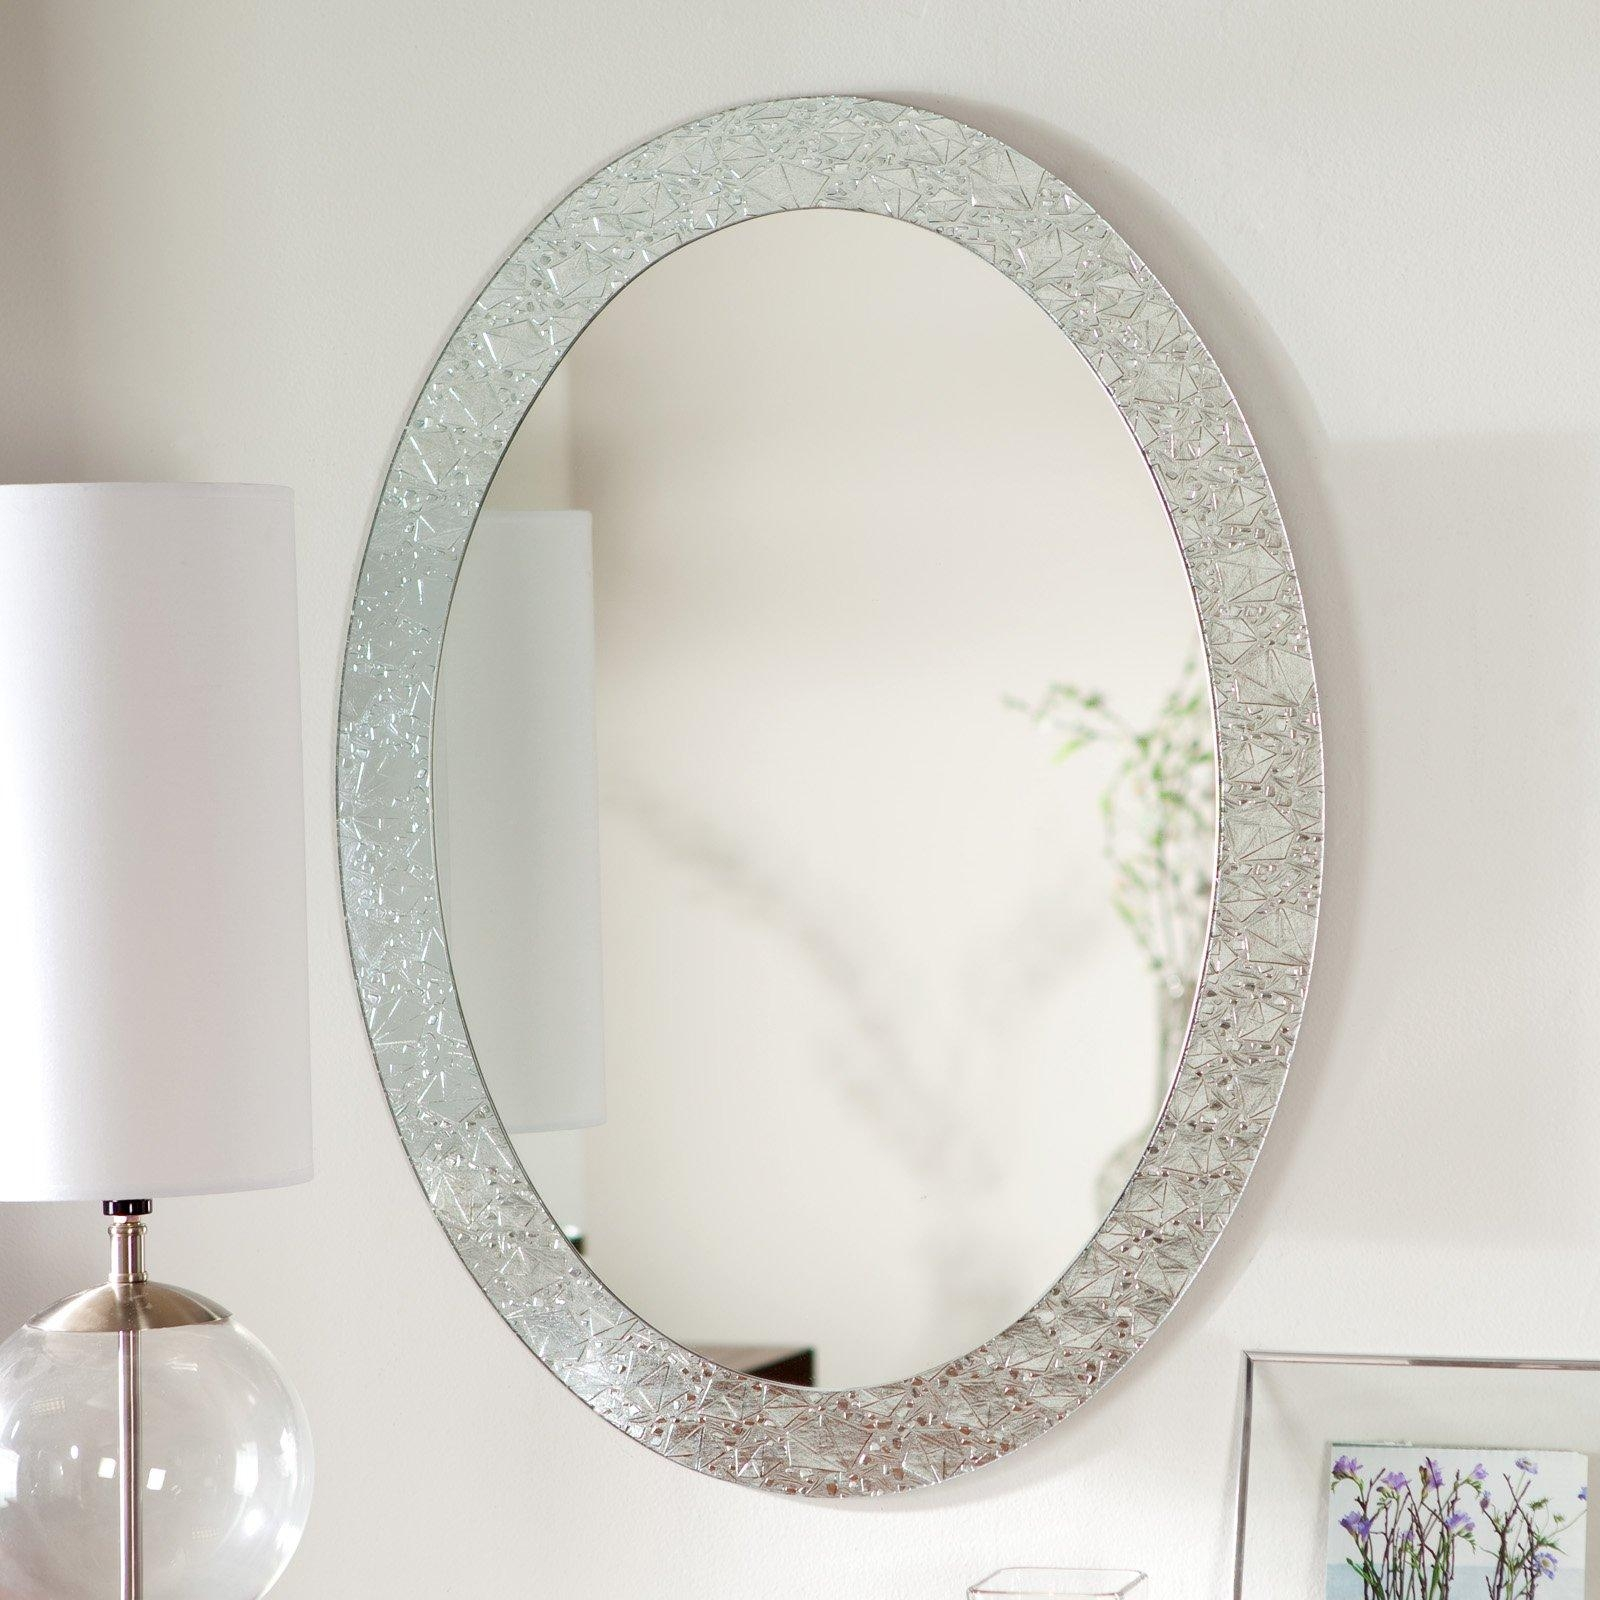 Bathroom Cabinets : Best Images About Mirrors On Pinterest Oval For Oval Bath Mirrors (Image 2 of 20)